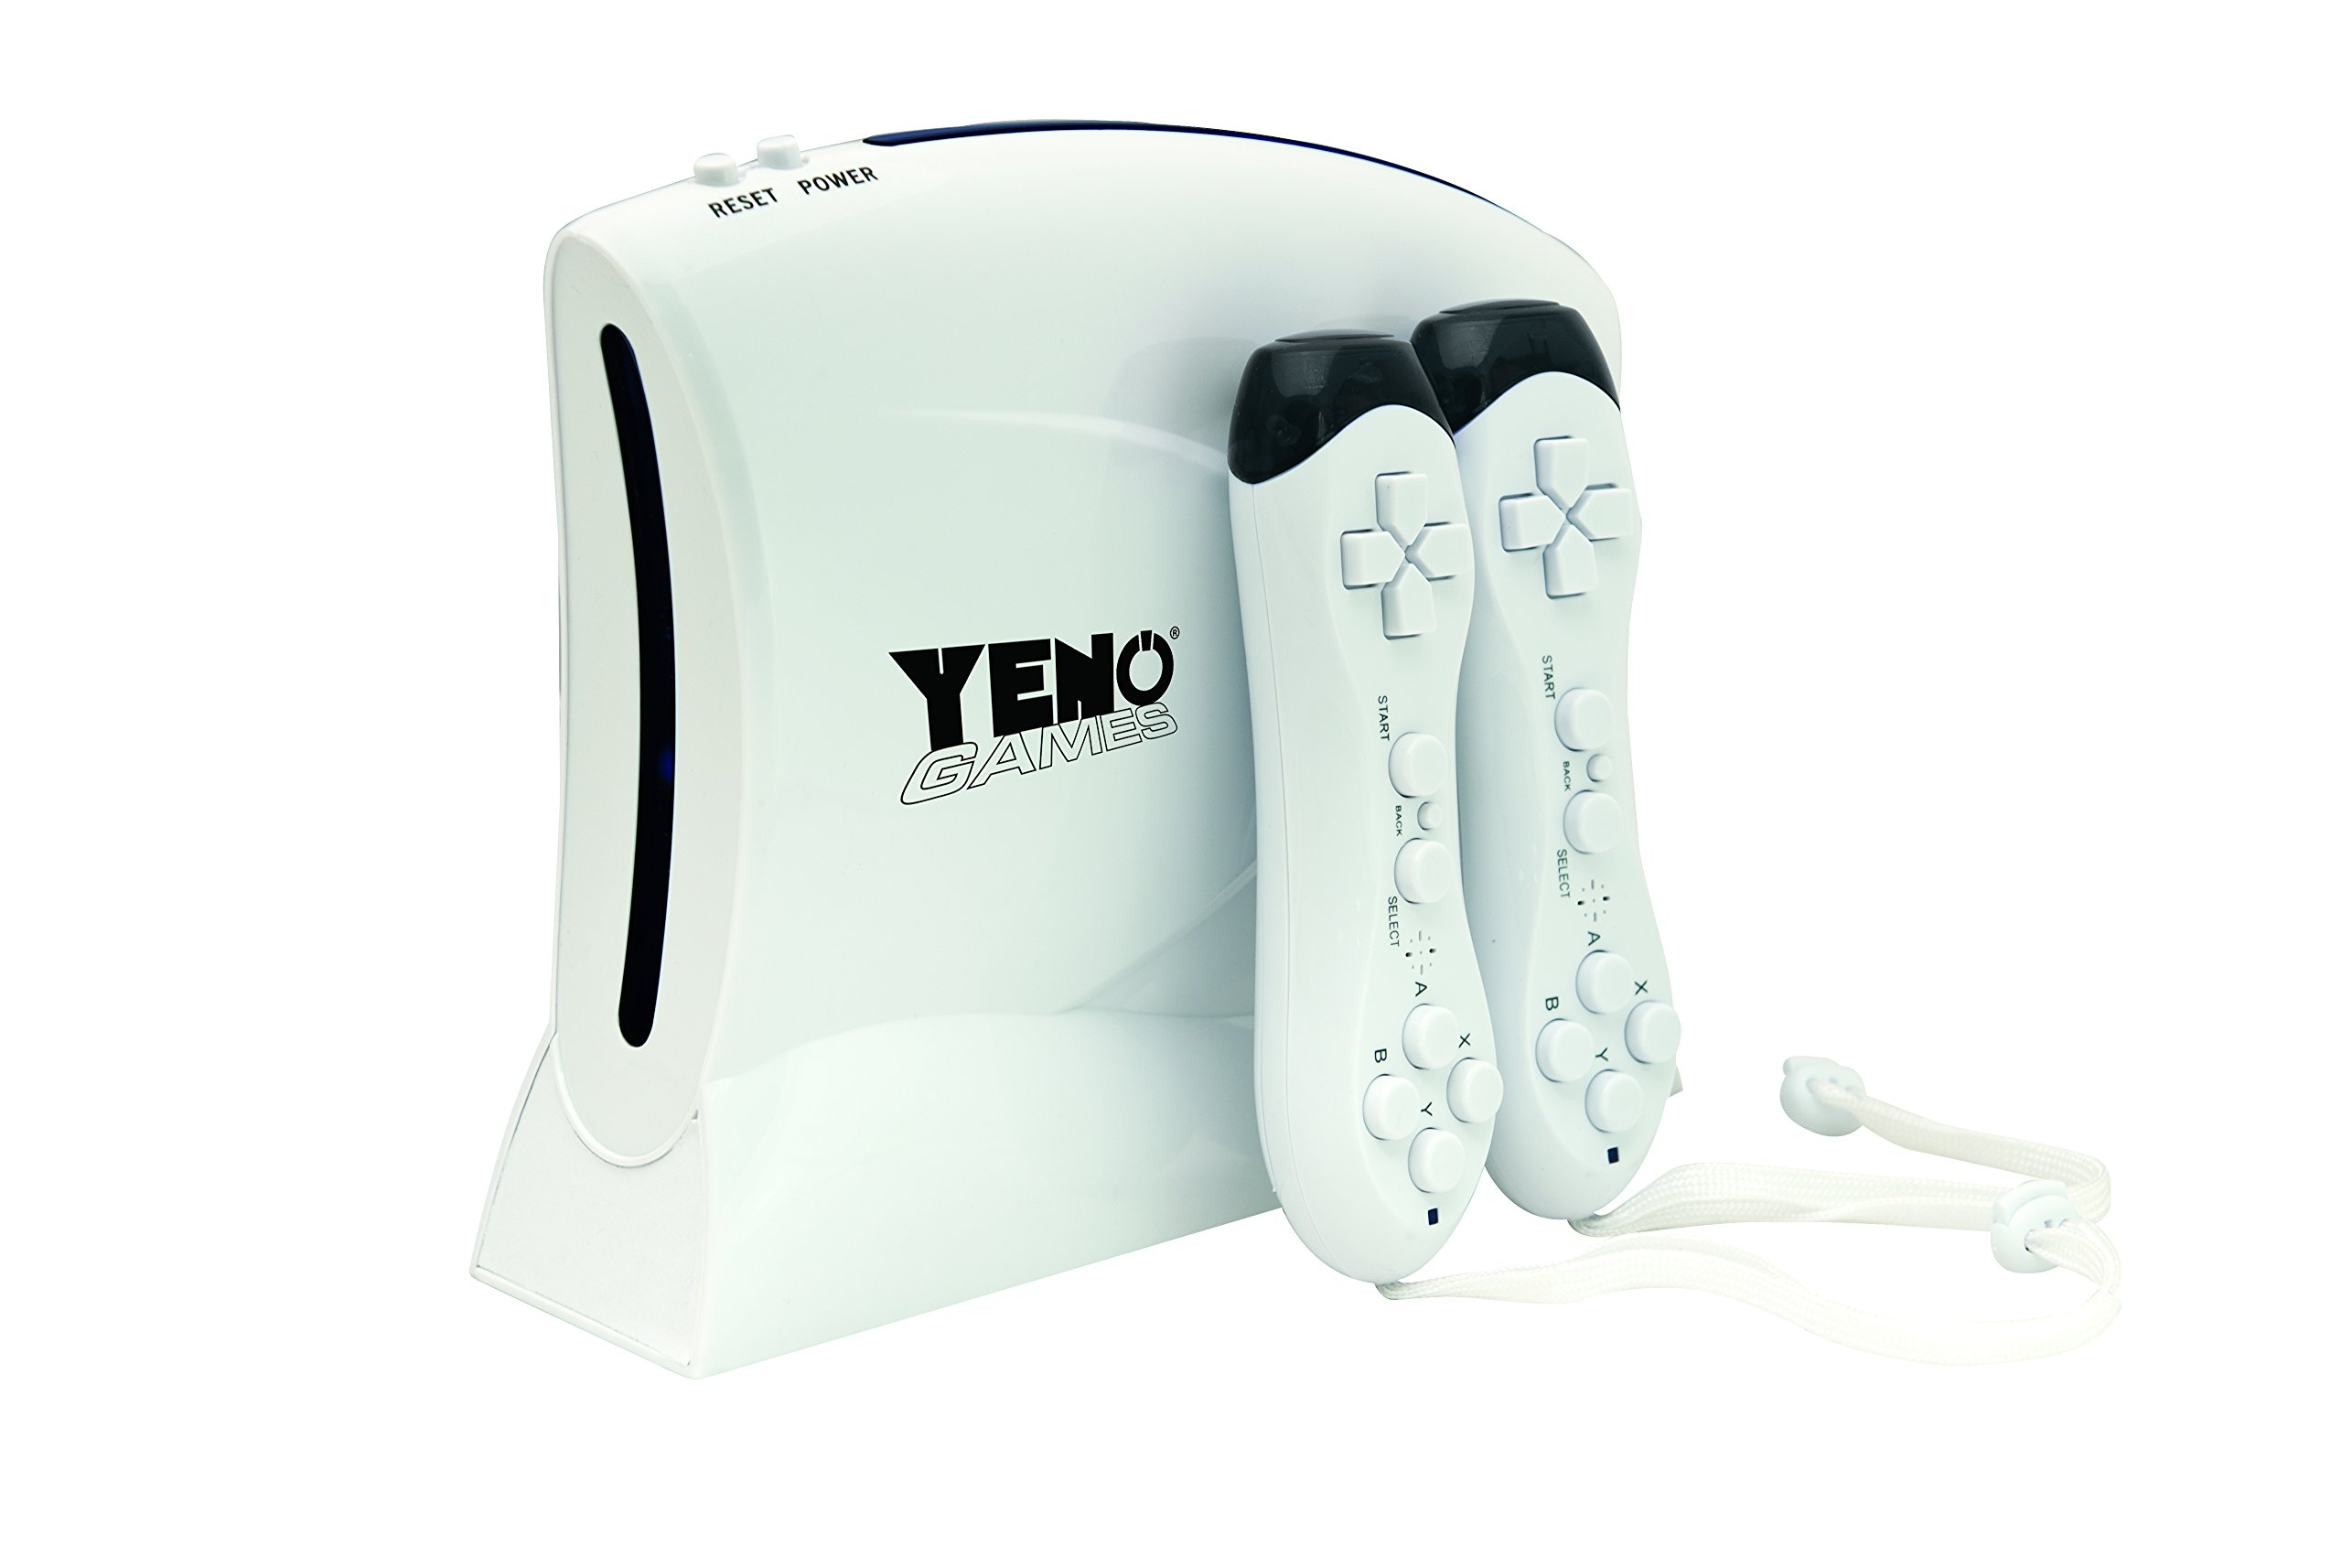 Lexibook Yeno TV Game Console 200-in-1 Electronic Games, Wireless controllers, Tennis, swimming, aerobics, bowling, skiing, beach volleyball, golf, arcade games - JG7420